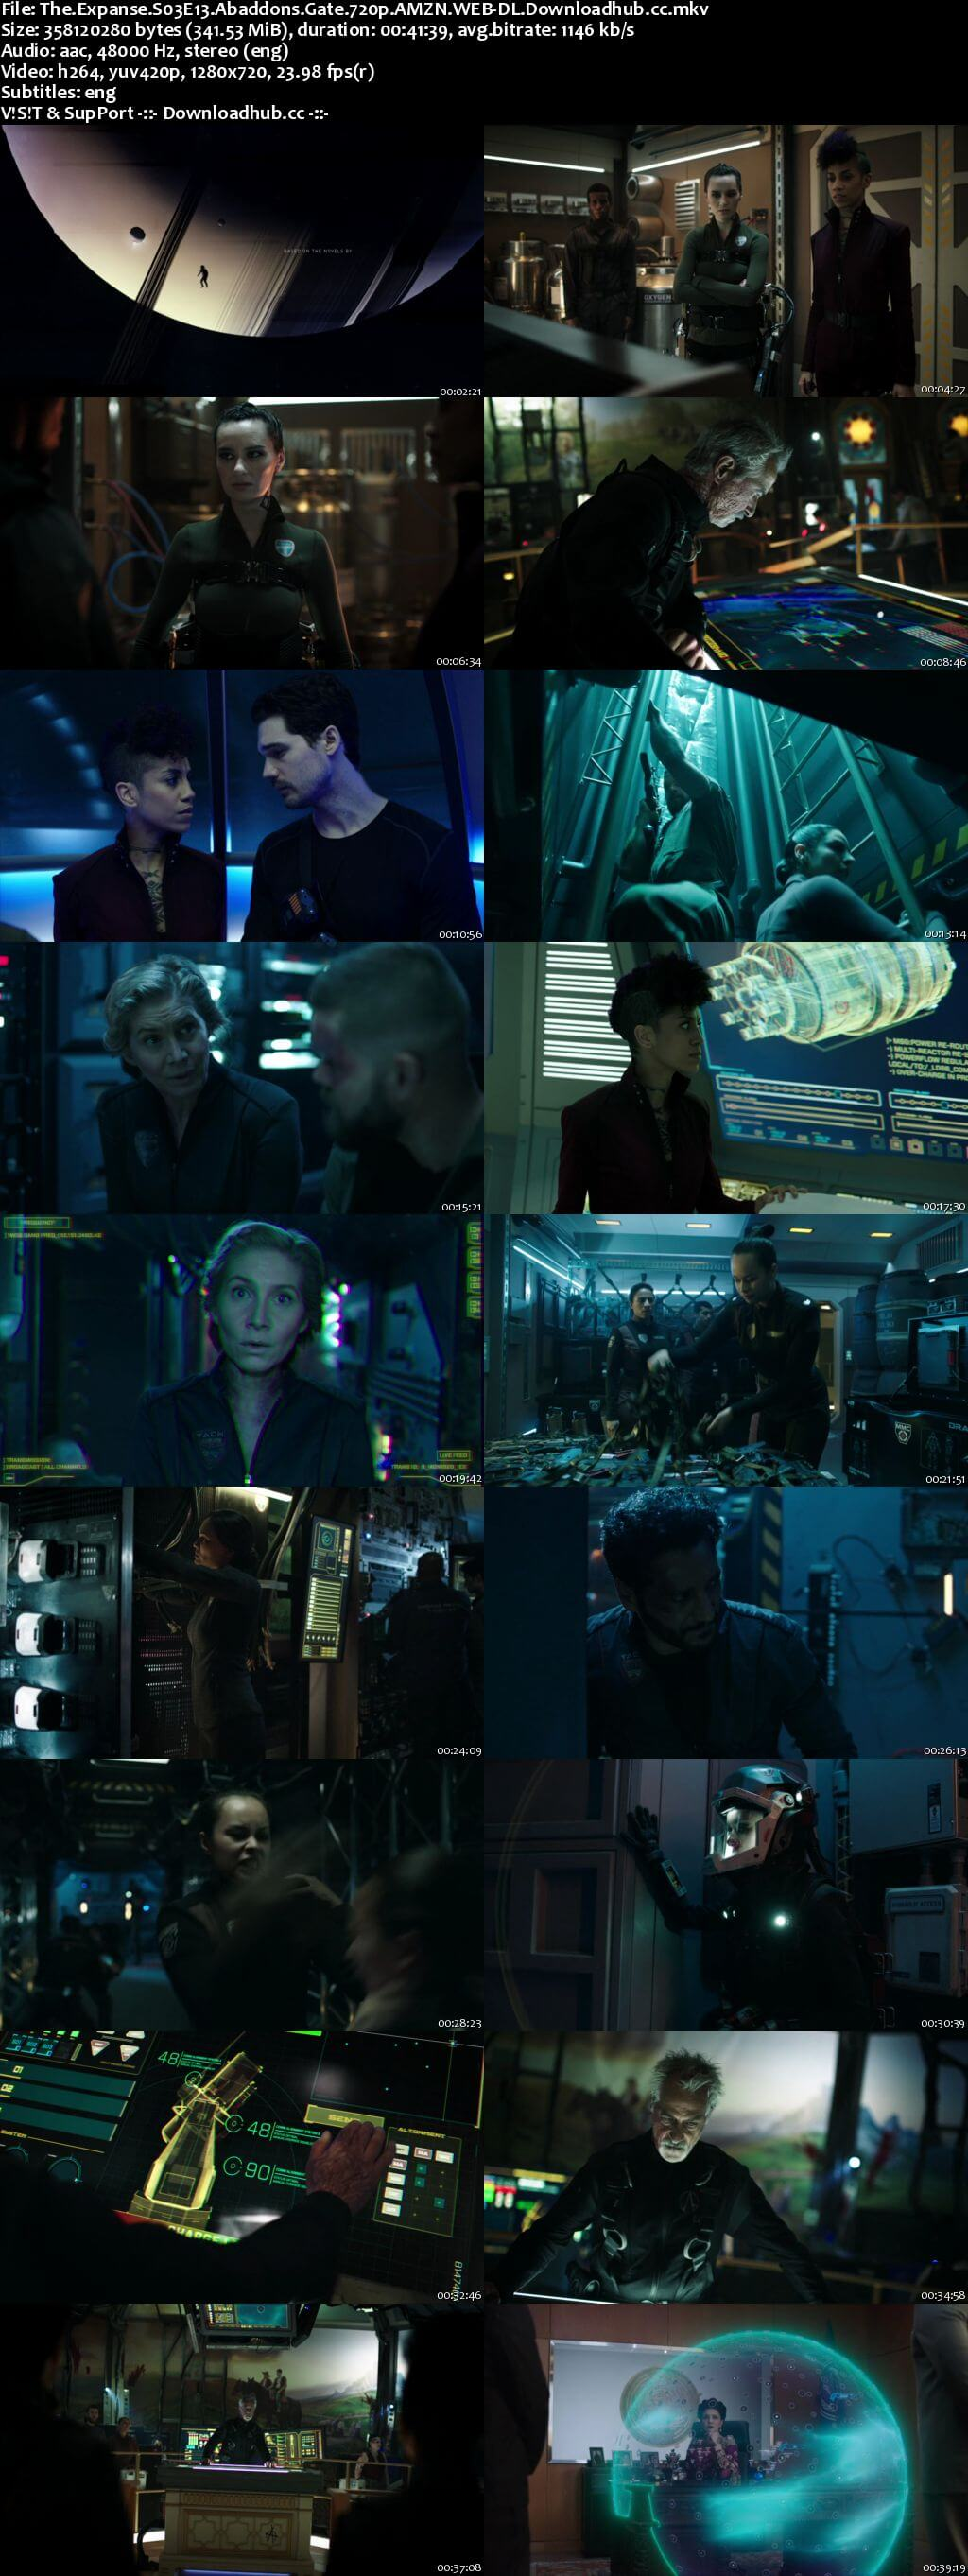 The Expanse S03E13 340MB WEBRip 720p x264 ESubs